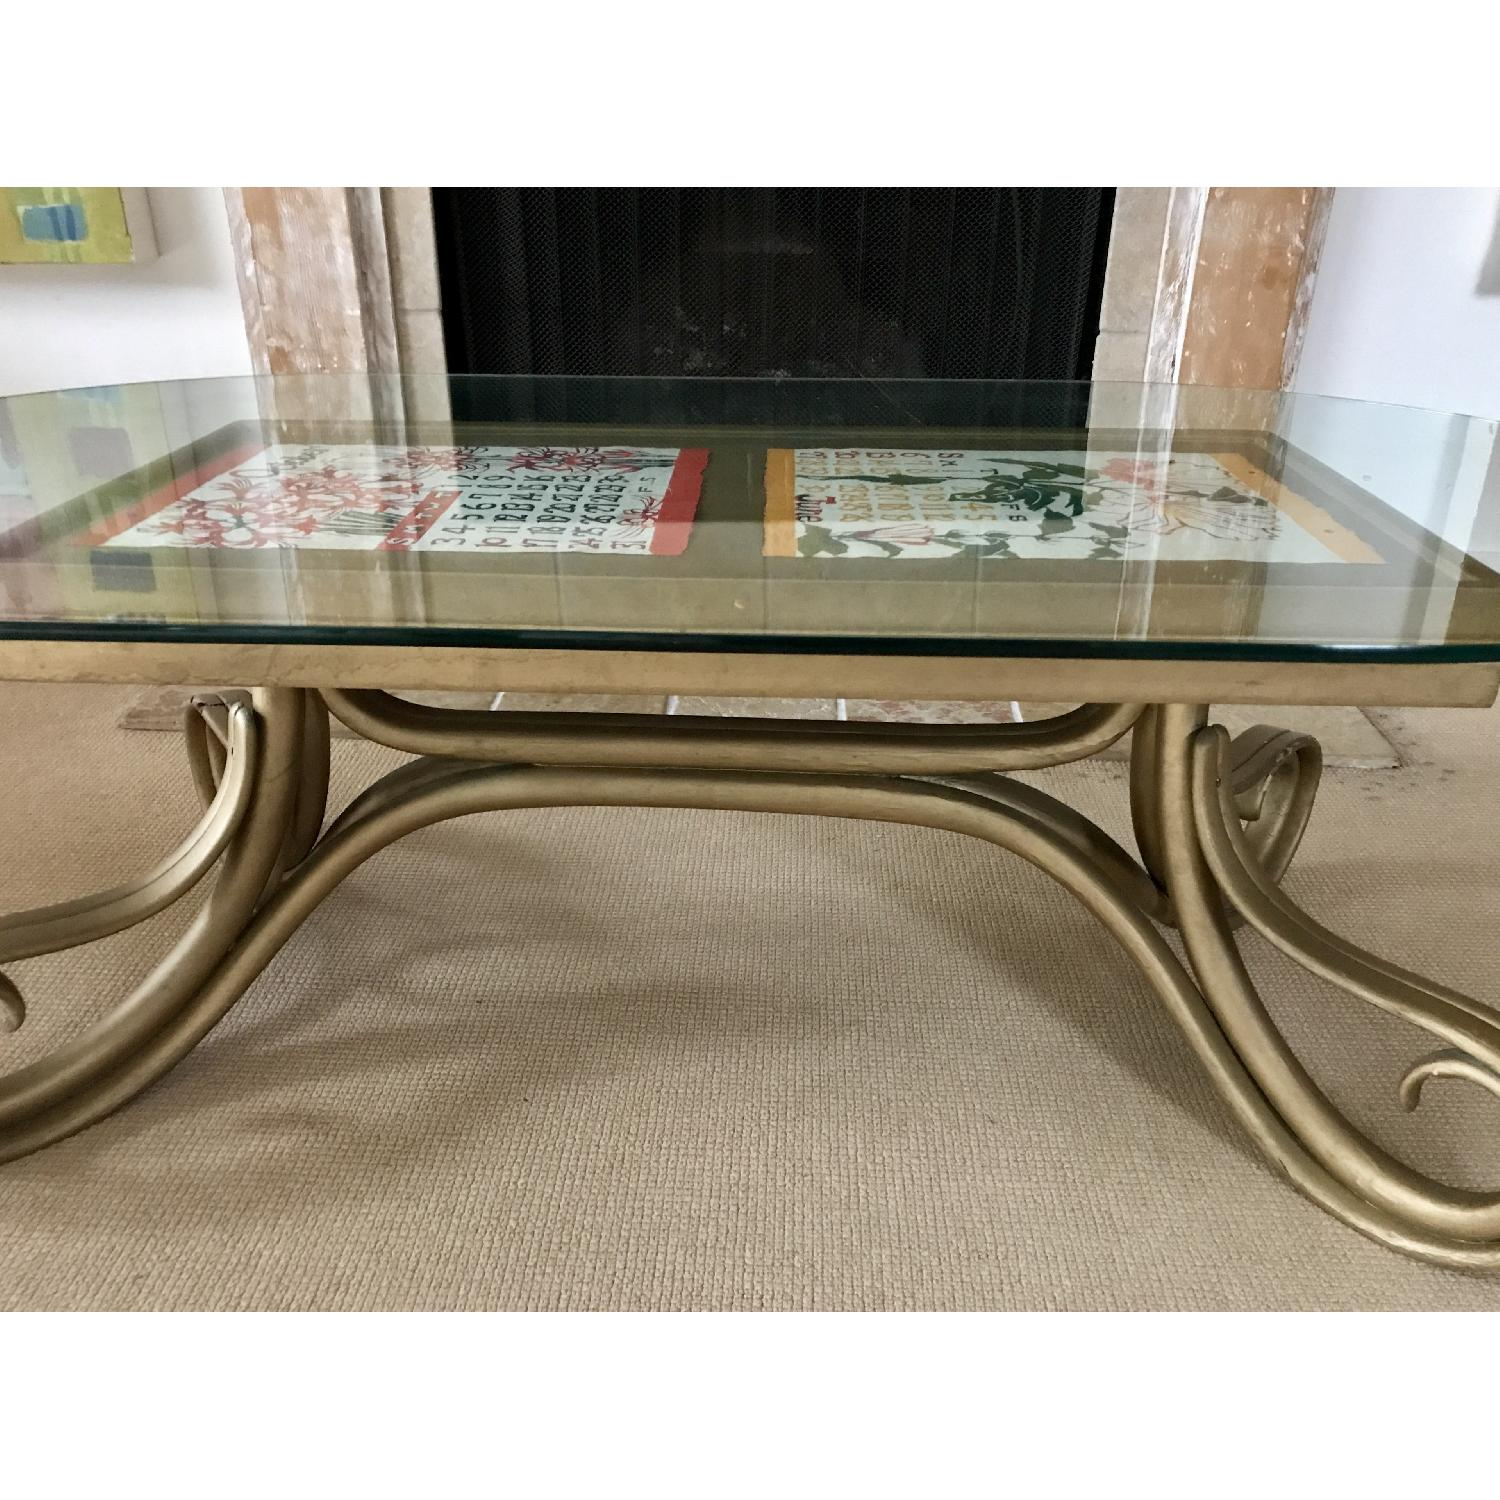 Vintage Thonet Bentwood Glass Top Coffee Table - image-10